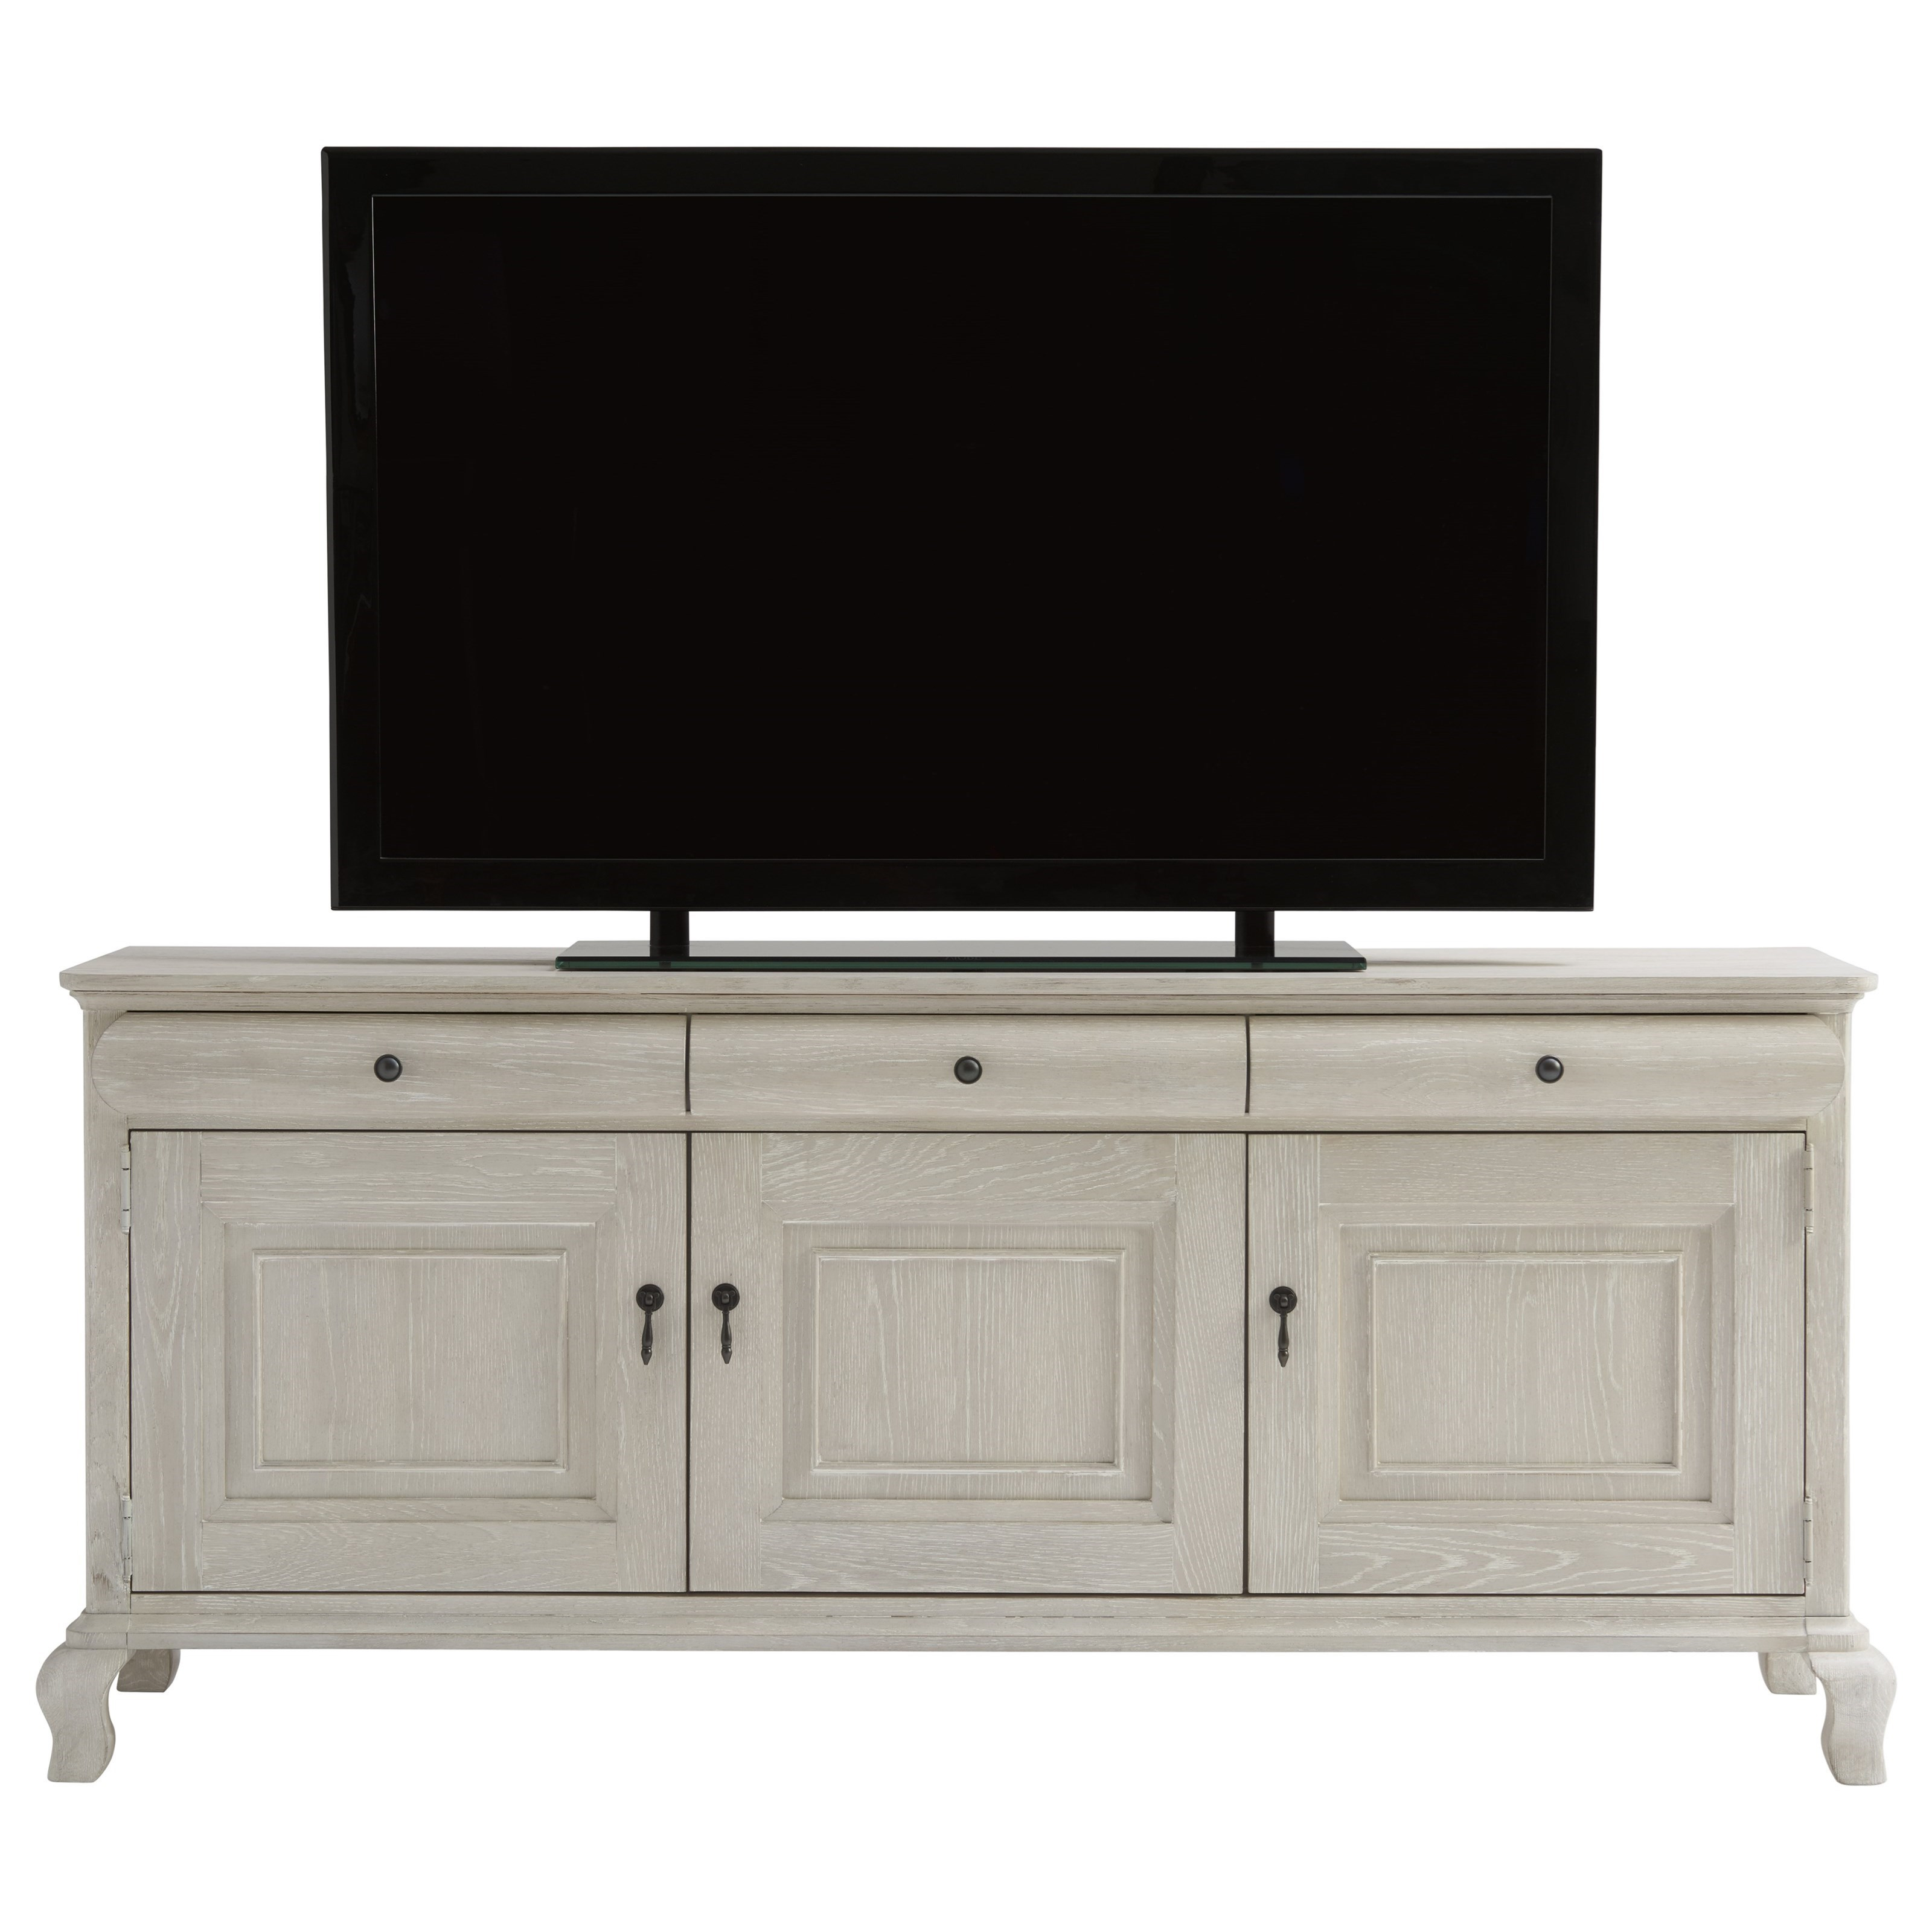 Paula Deen by Universal Bungalow Entertainment Console  - Item Number: 795964